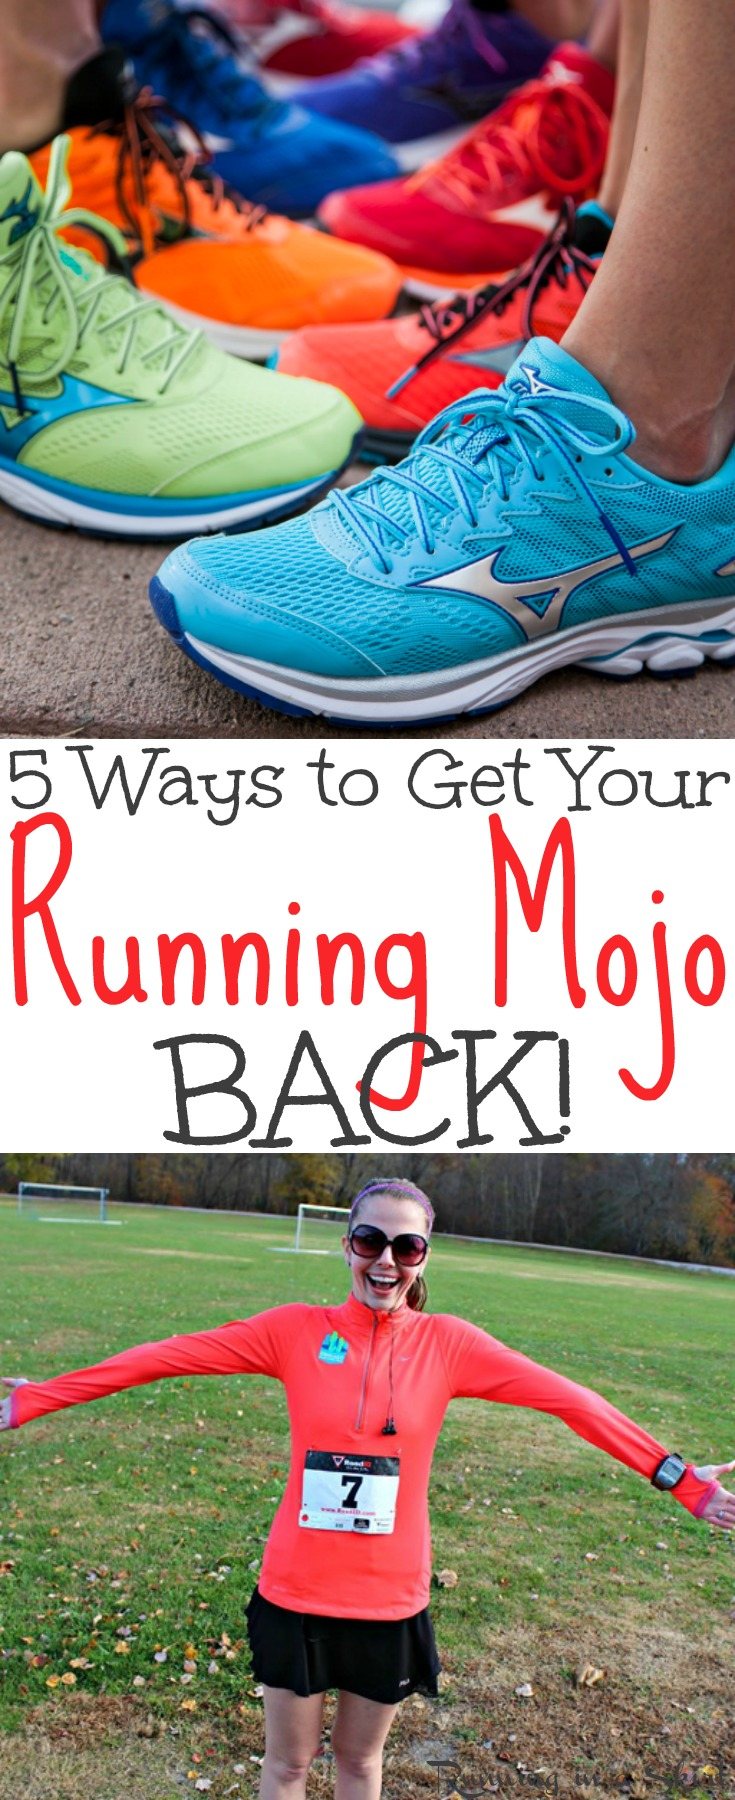 5 Ways to Get Your Running Mojo Back - fitness running motivation and mental tips for runners who are struggling to stay motivated. Simple ways to get back to jogging, treadmill running or trail running - no excuses! / Running in a Skirt via @juliewunder